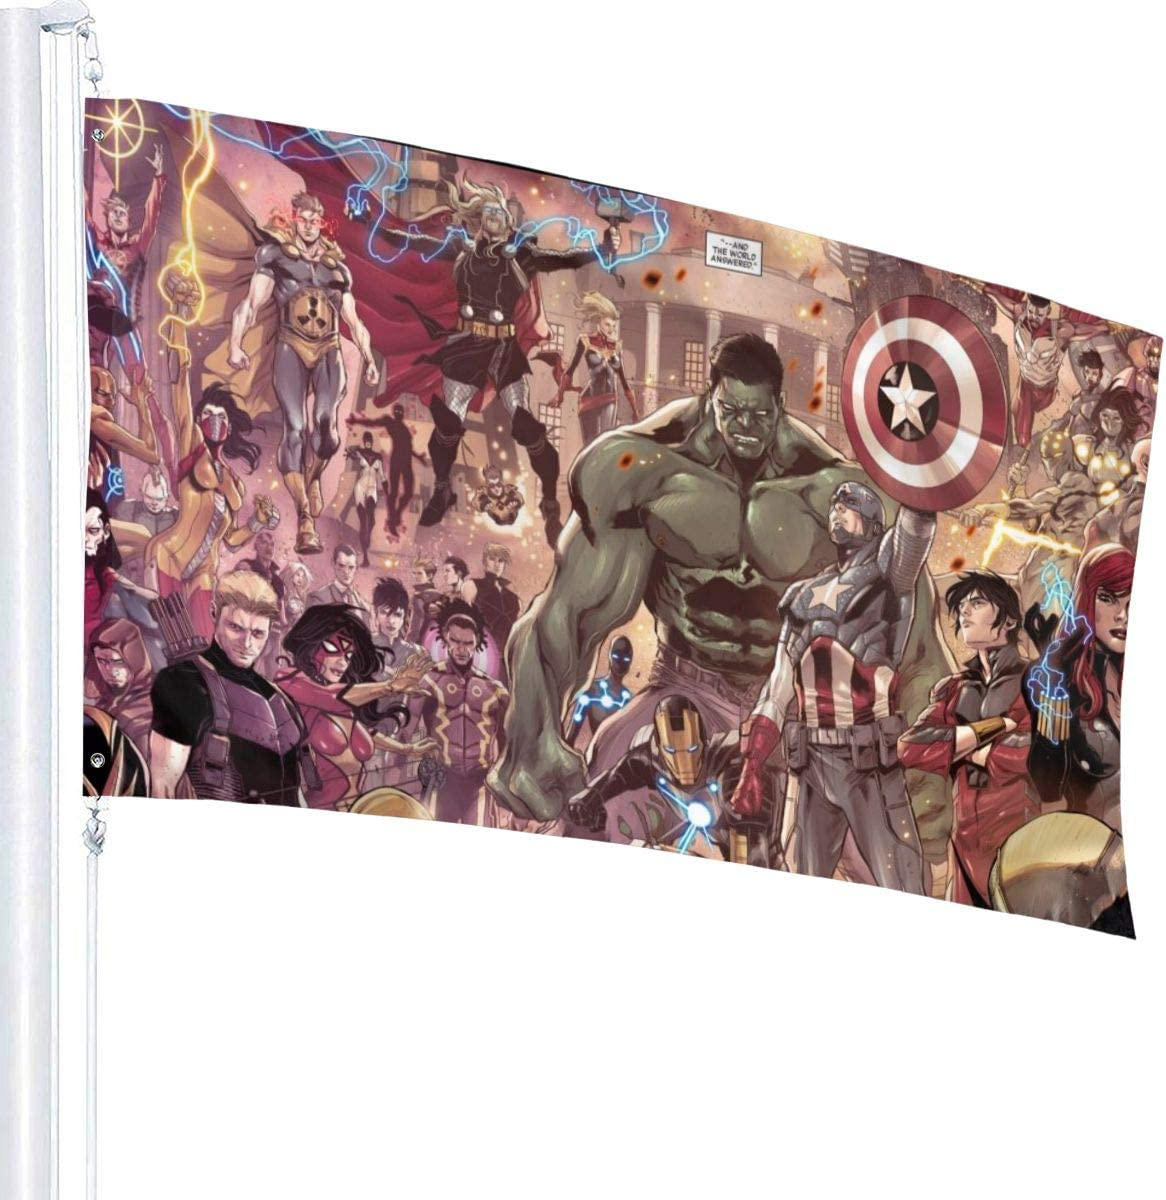 YEECUSTOM Avenger Flag 3x5 Feet Flags with Grommets Outdoor Printing Flags Quality 3x5 Feets Decoration Outdoor Stars and Stripes Banner